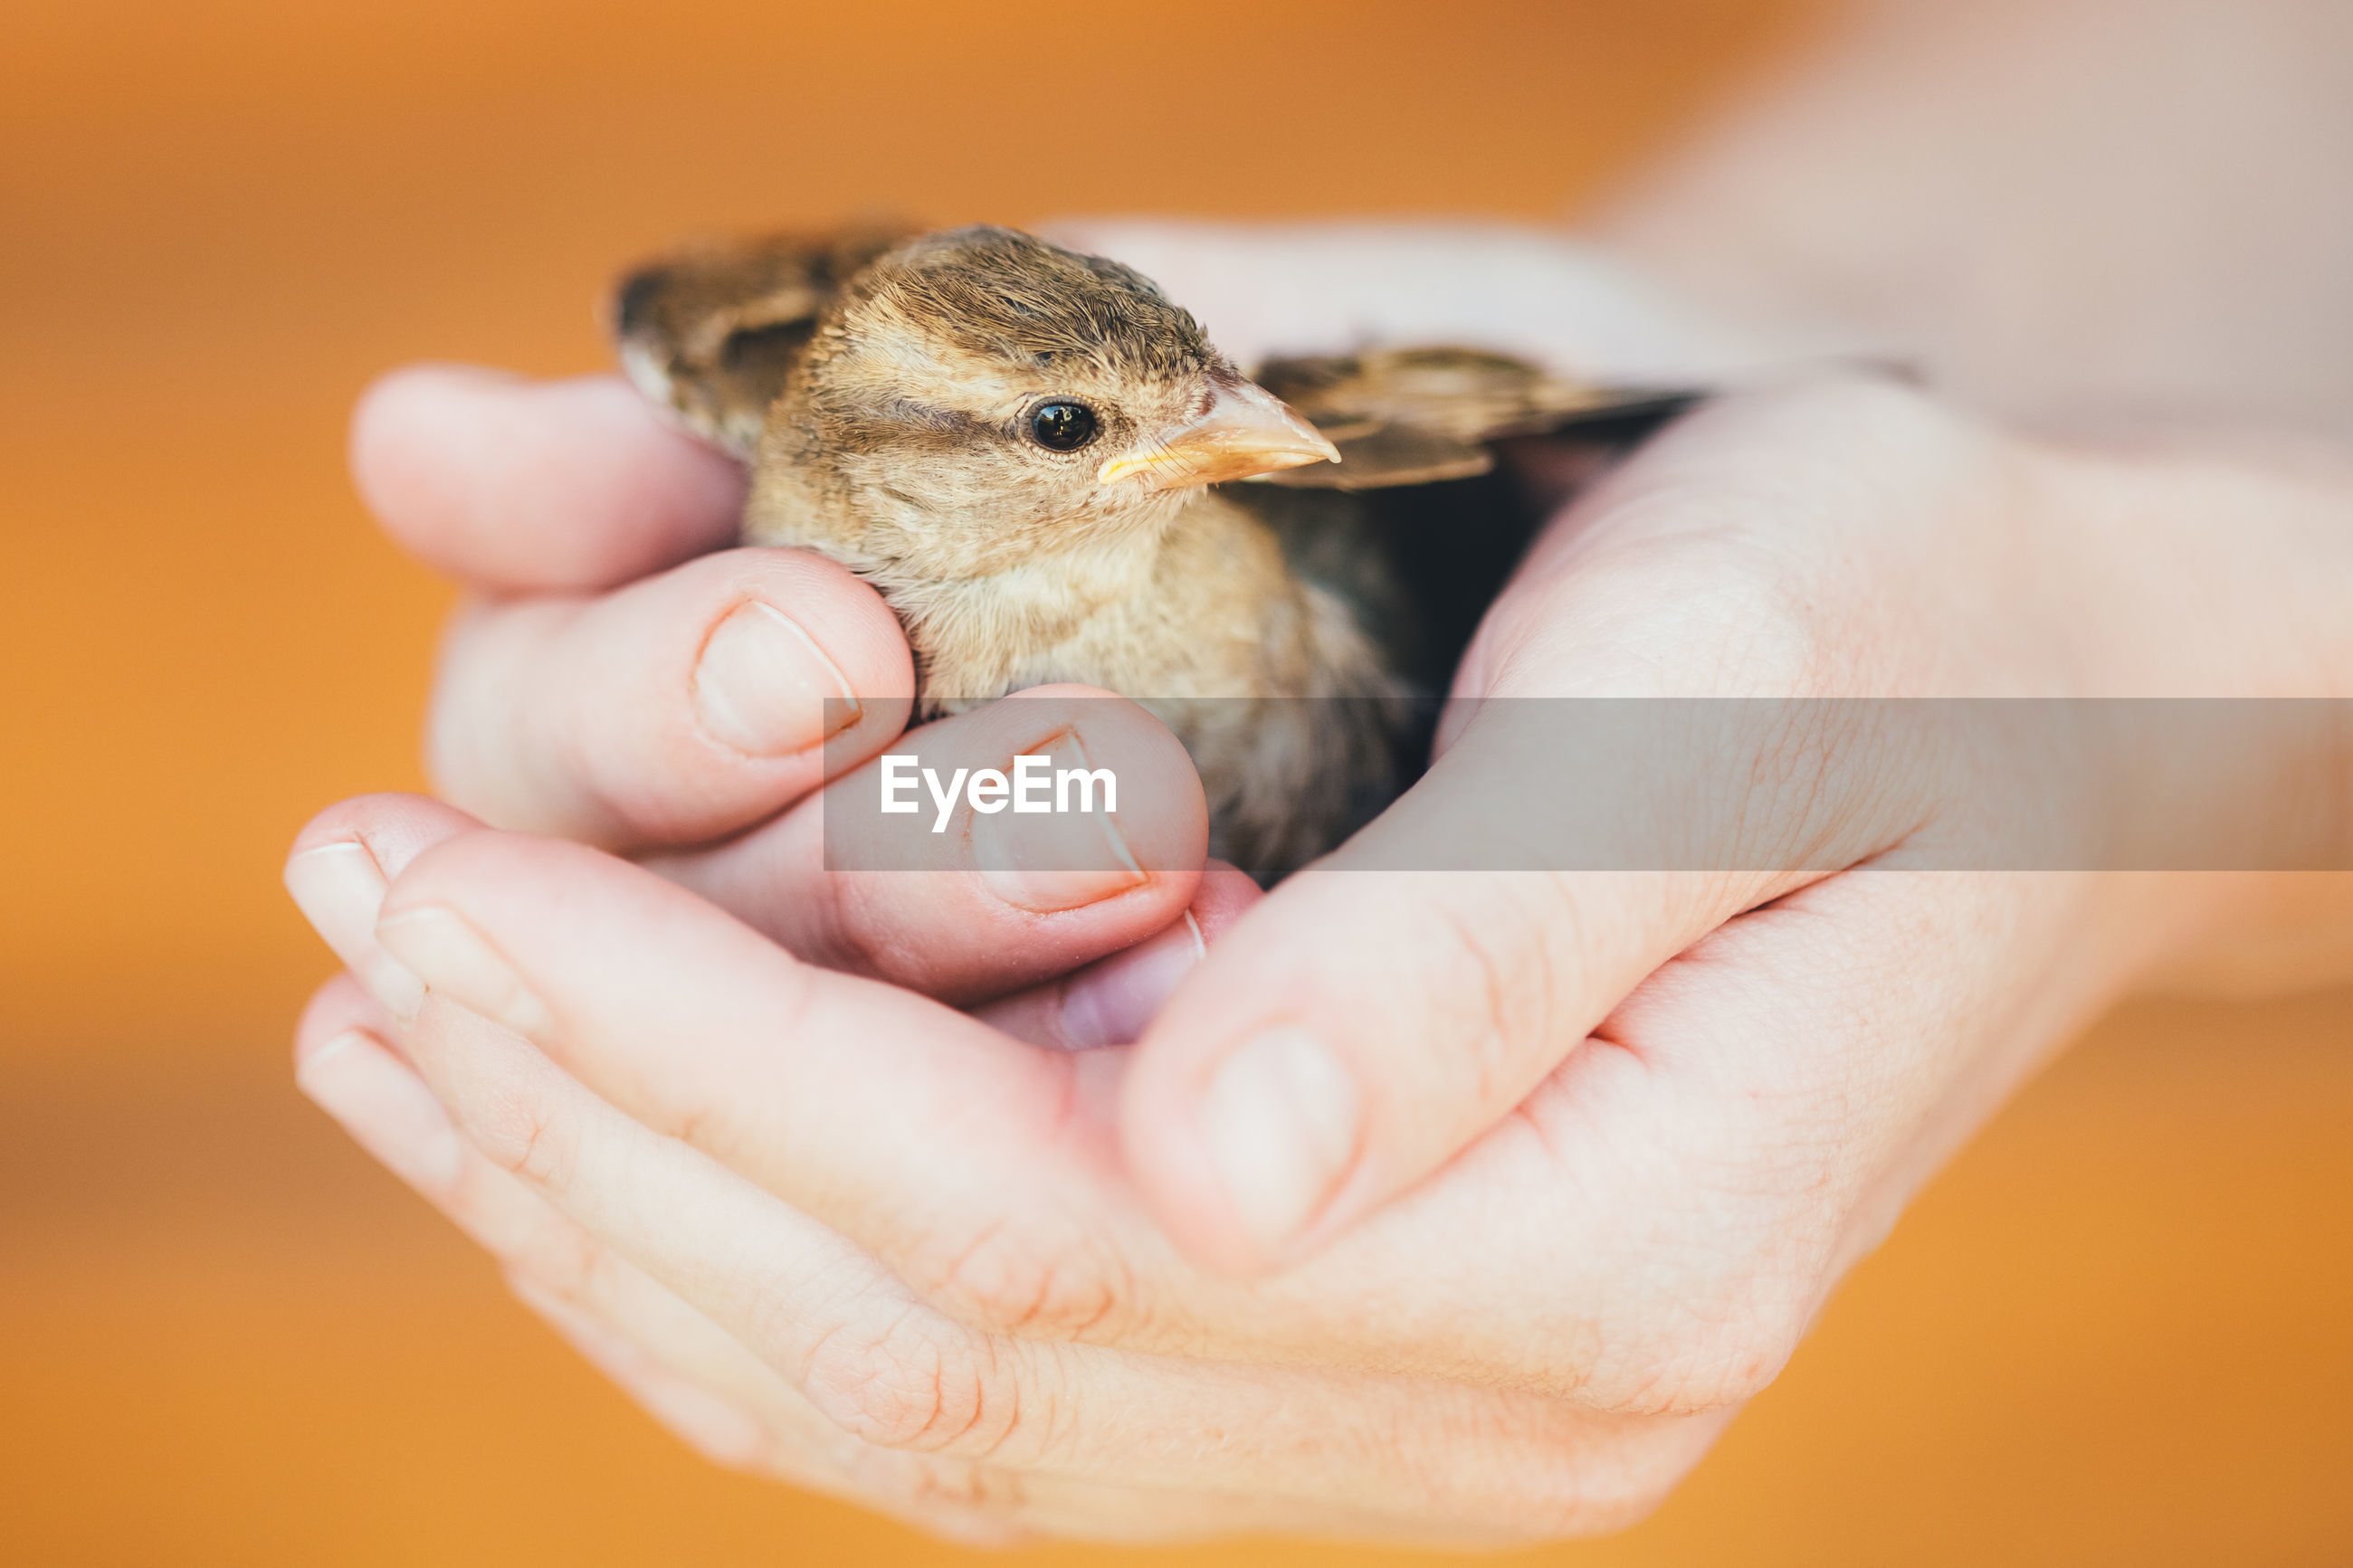 Cropped hands holding young bird